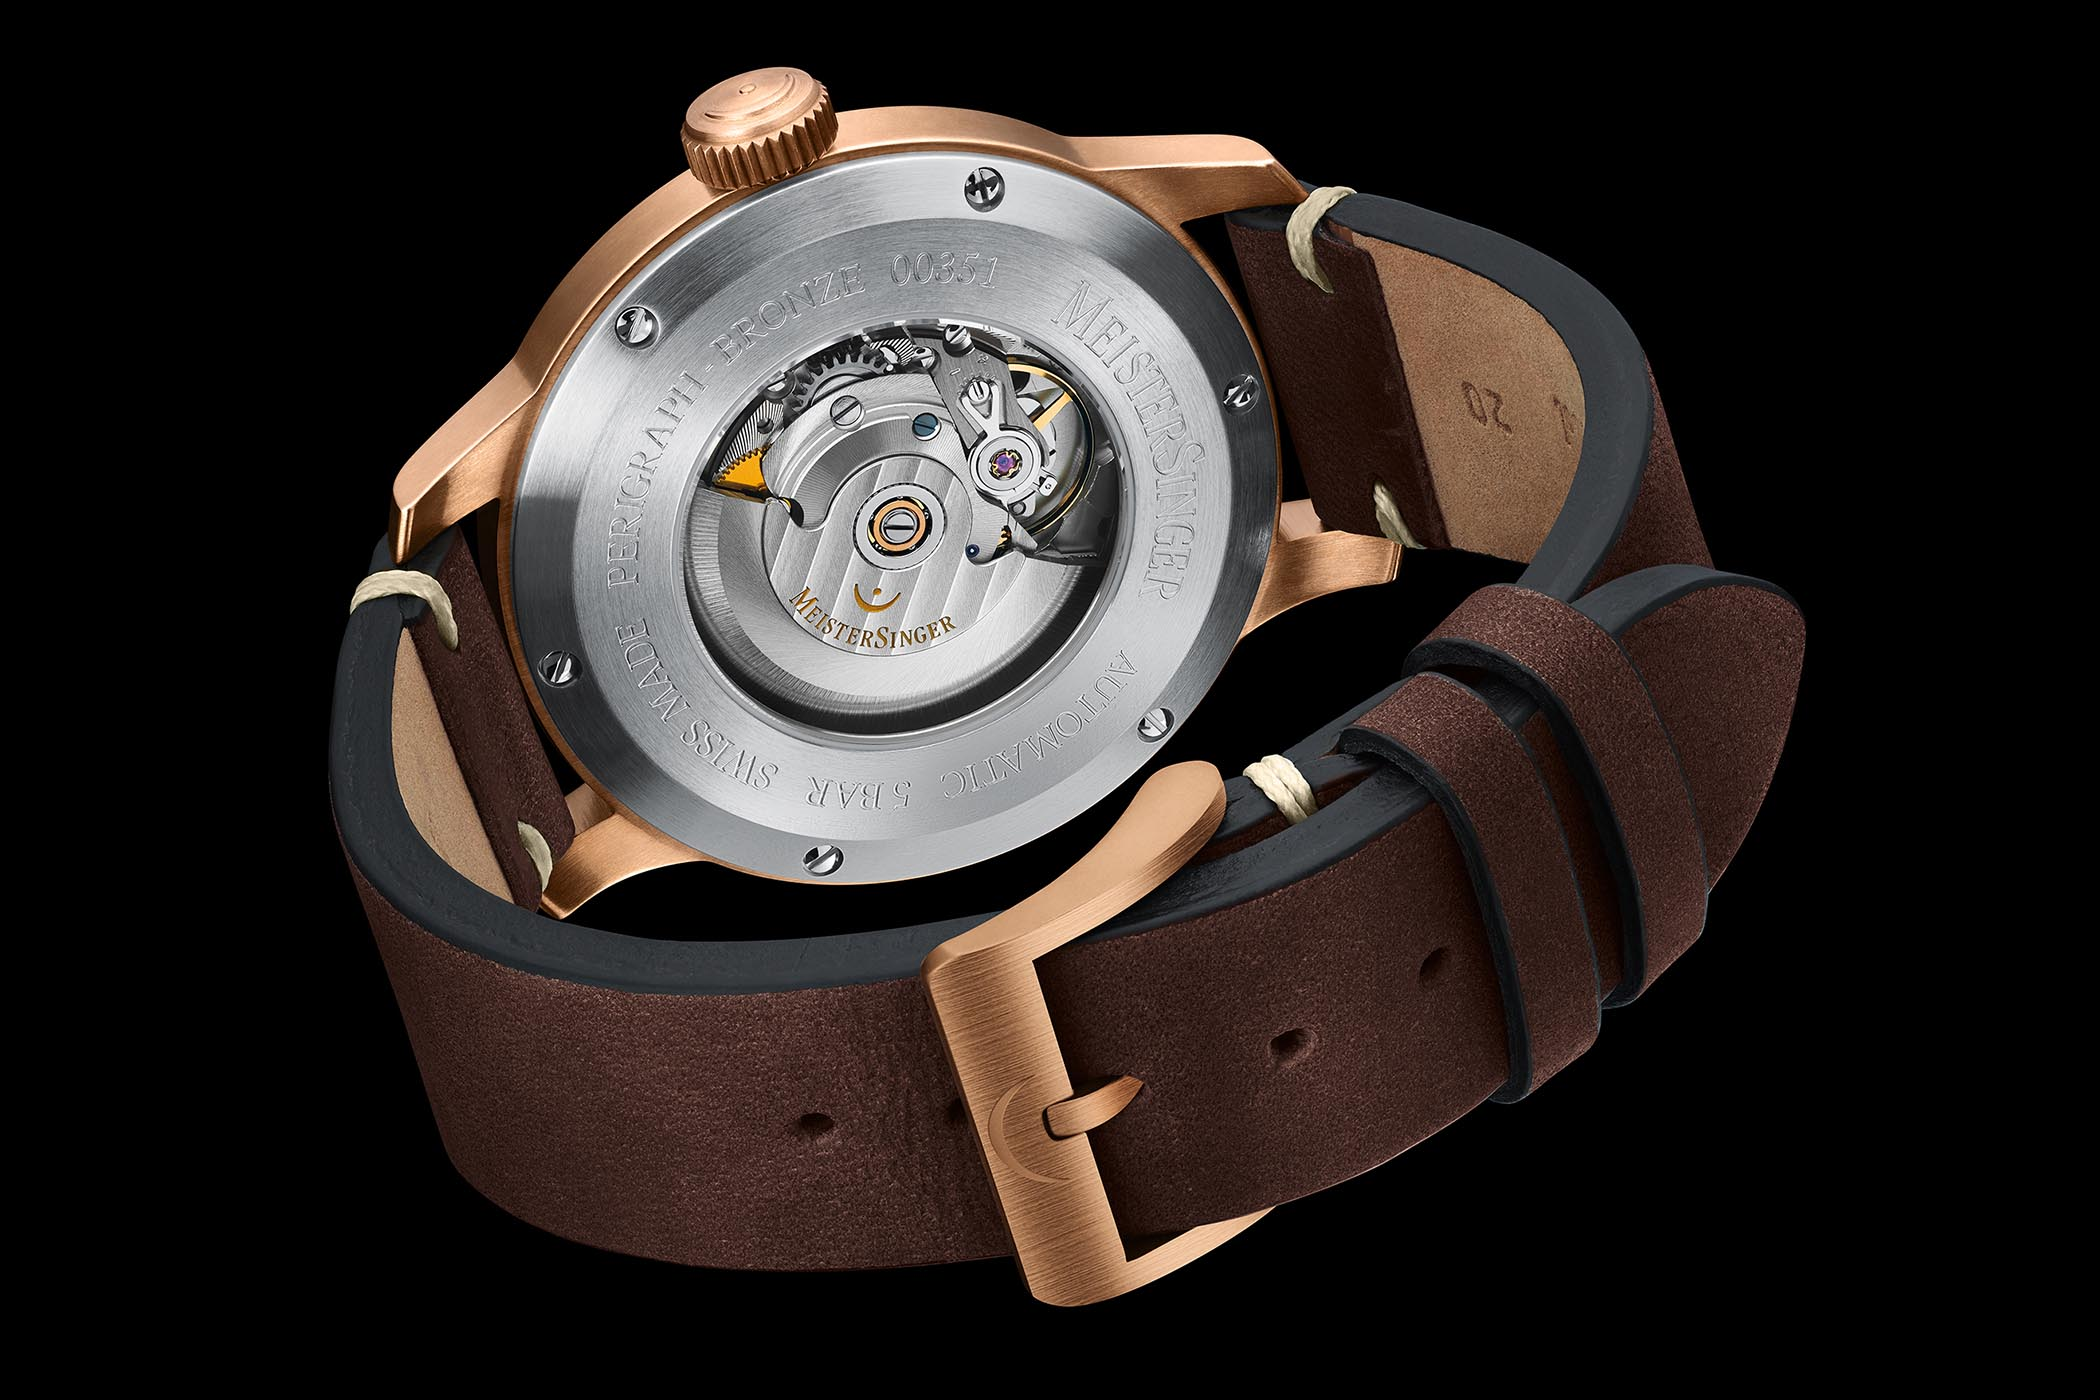 Baselworld 2019 - MeisterSinger Bronze Editions No. 03, Perigraph and Metris - 6